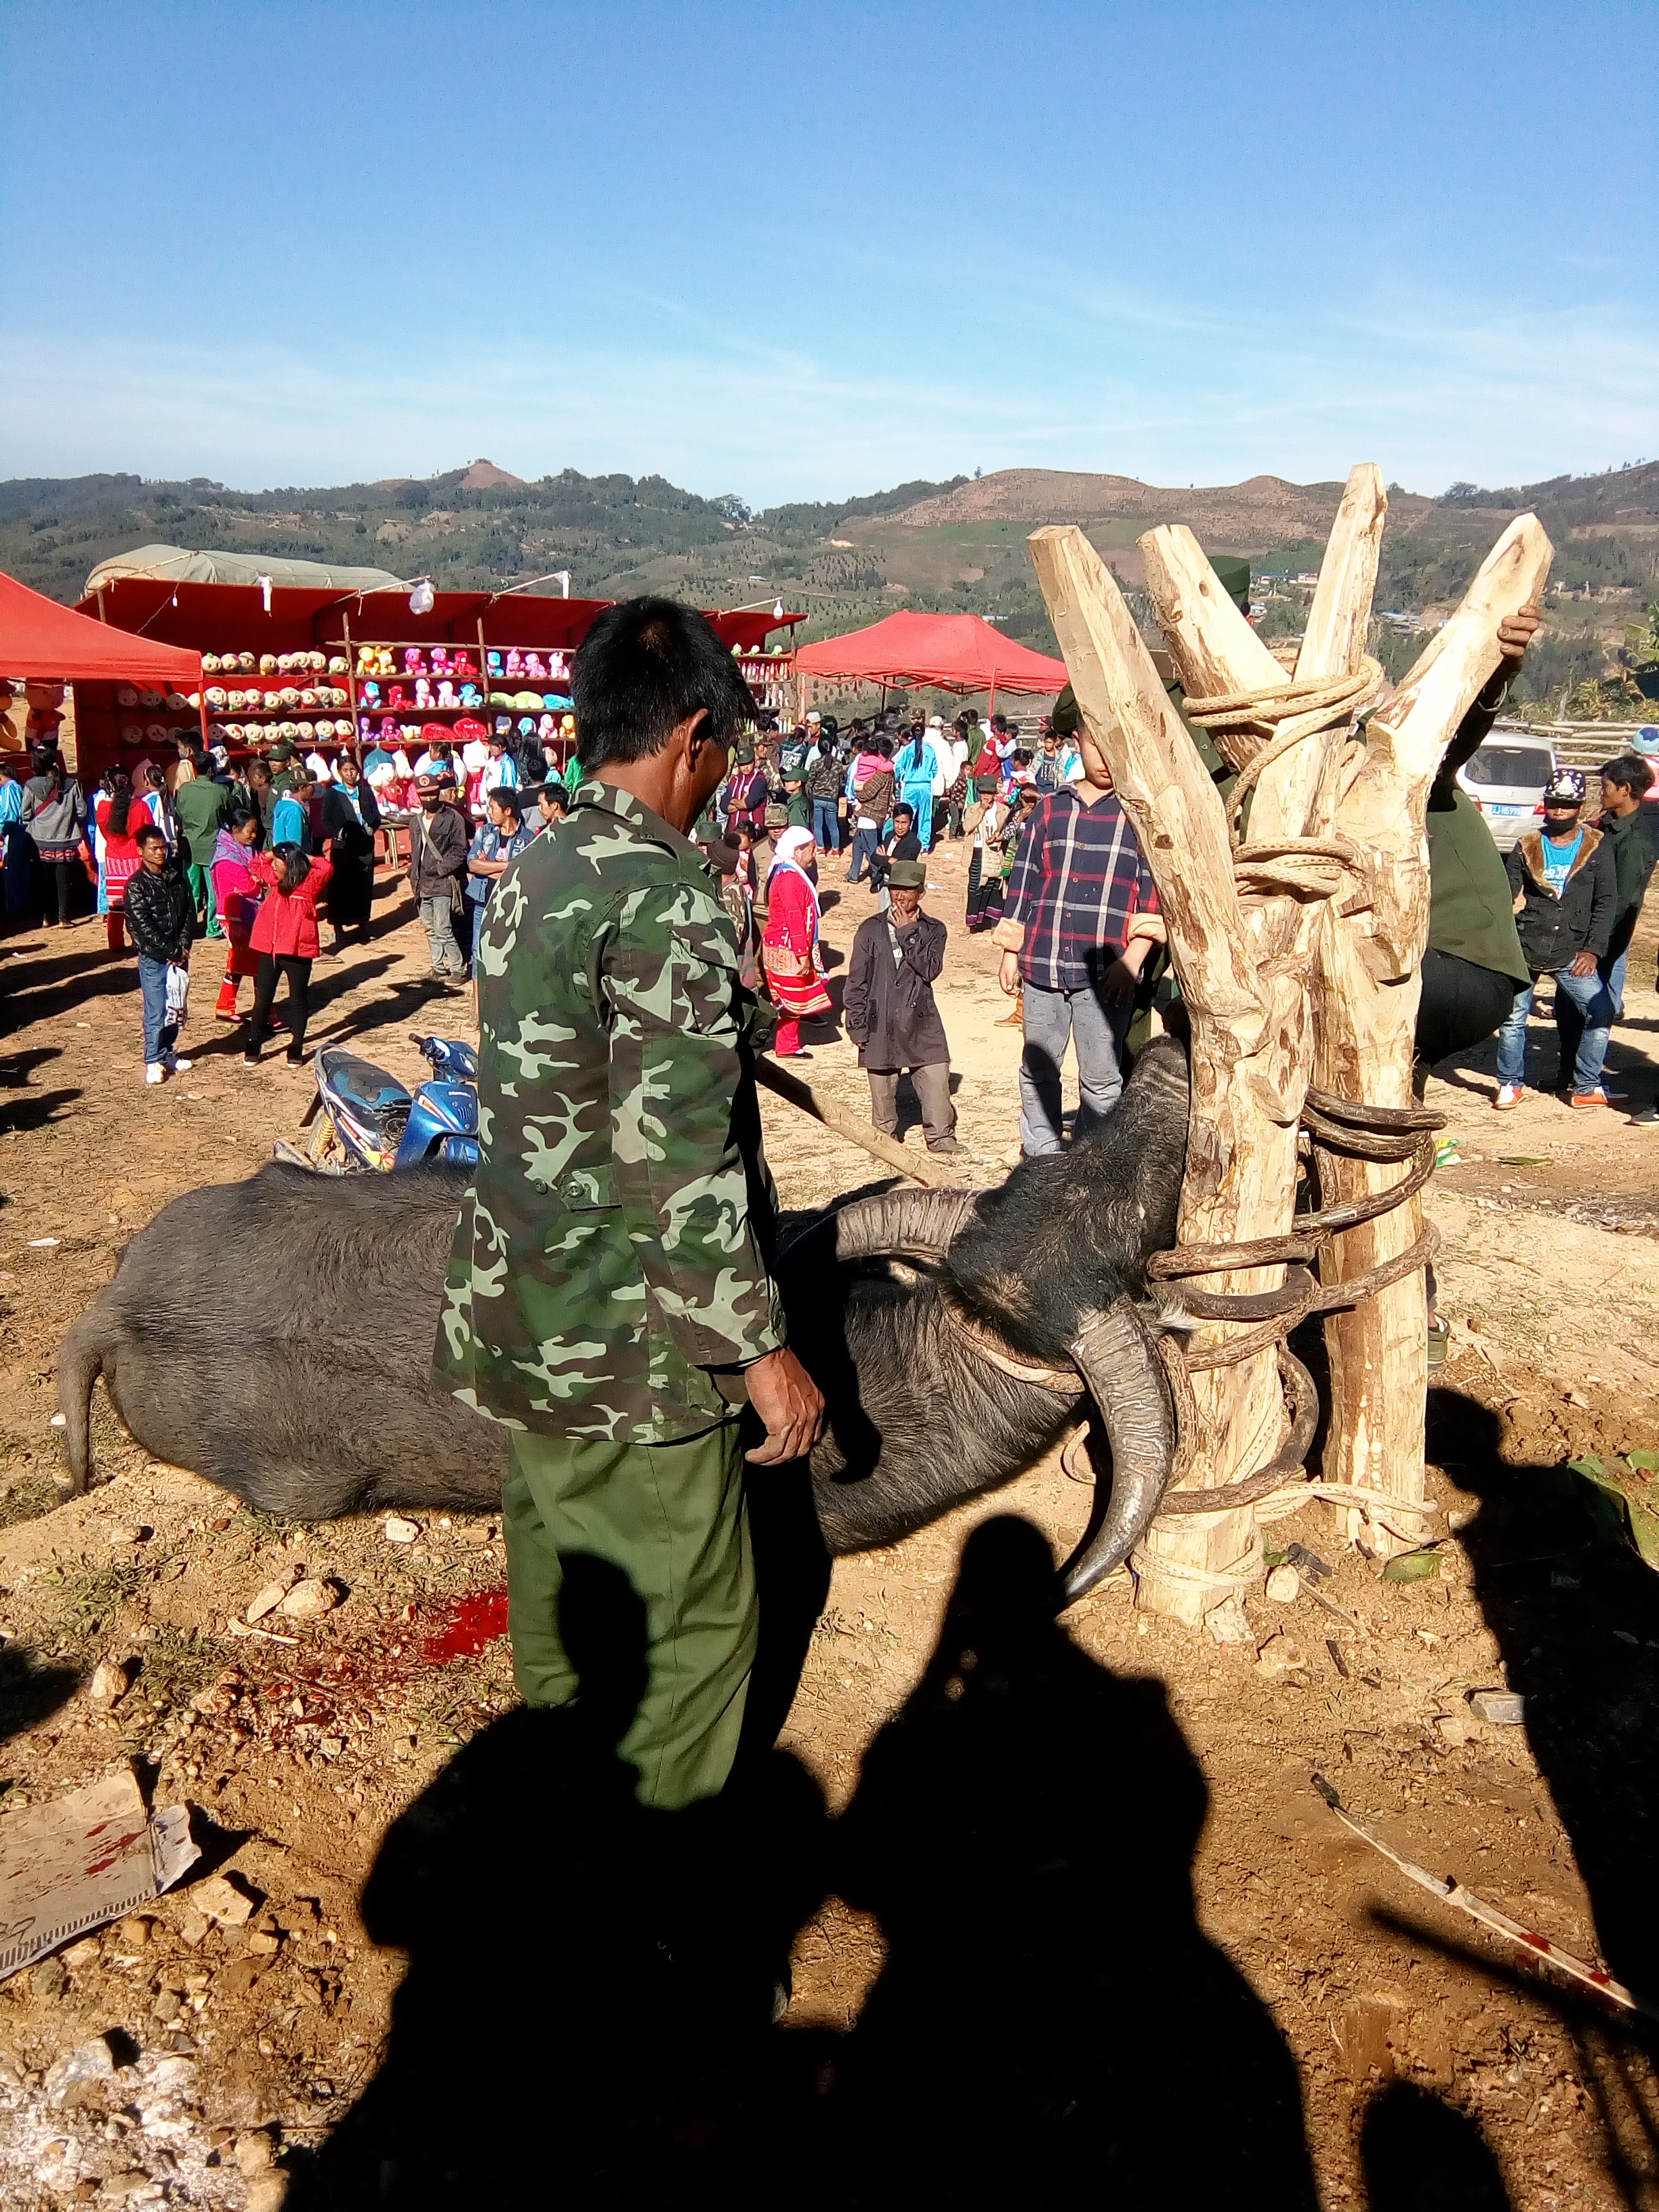 Buffalo Sacrifice during the opening of the new market. Kawn Mau, Wa State, Myanmar. Photo: Hans Steinmüller, 2017